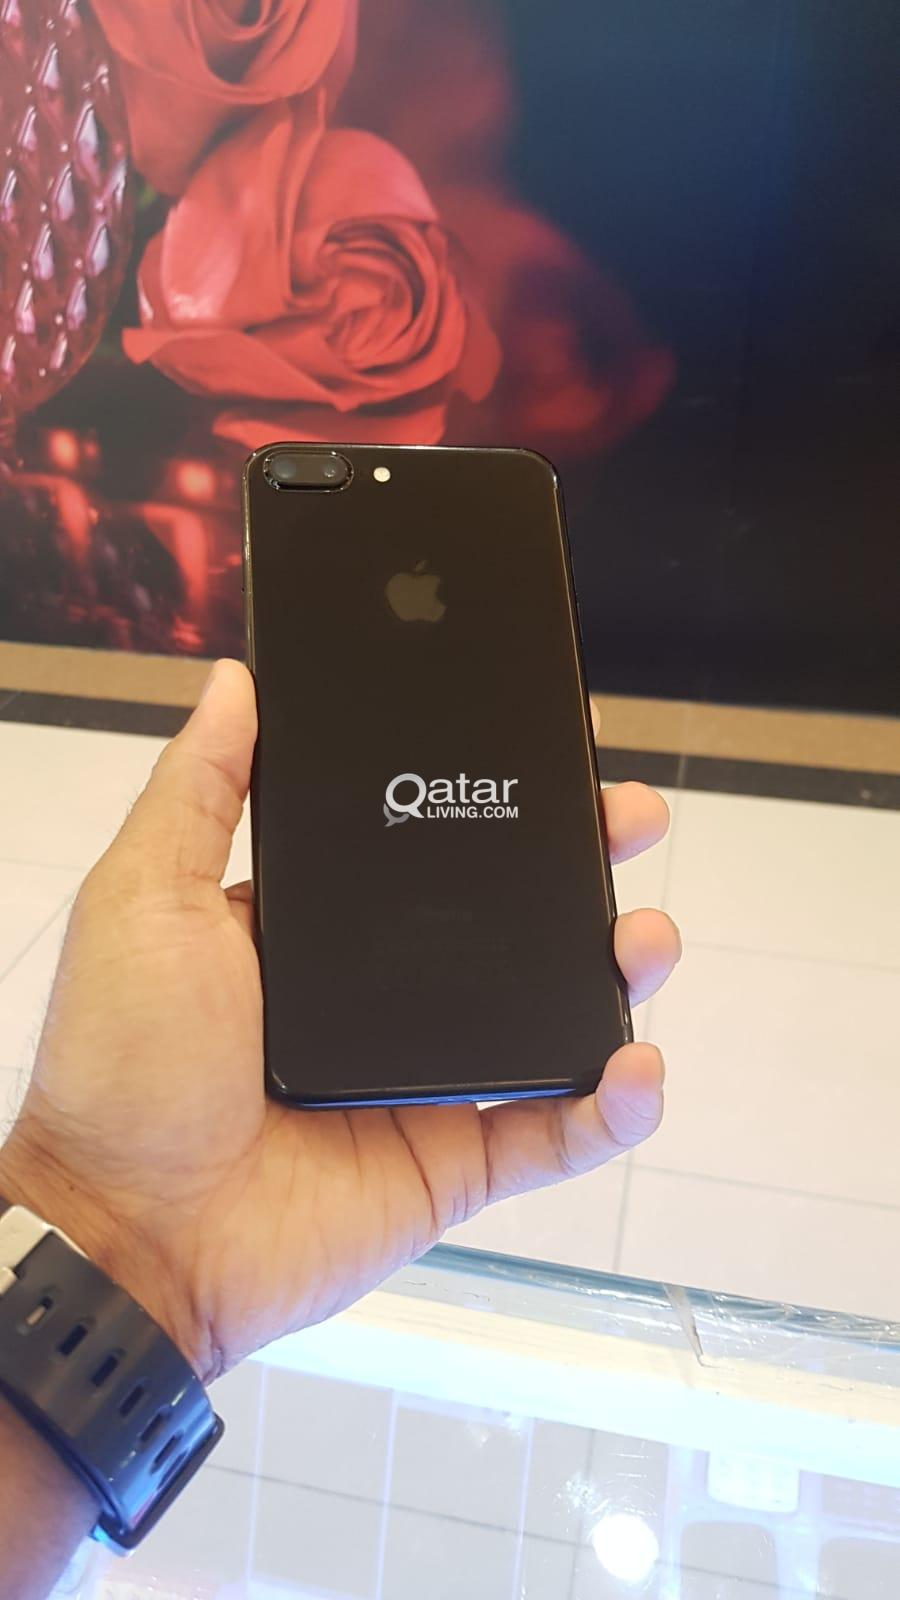 iphone 7plus 128 gb mate black clone | Qatar Living